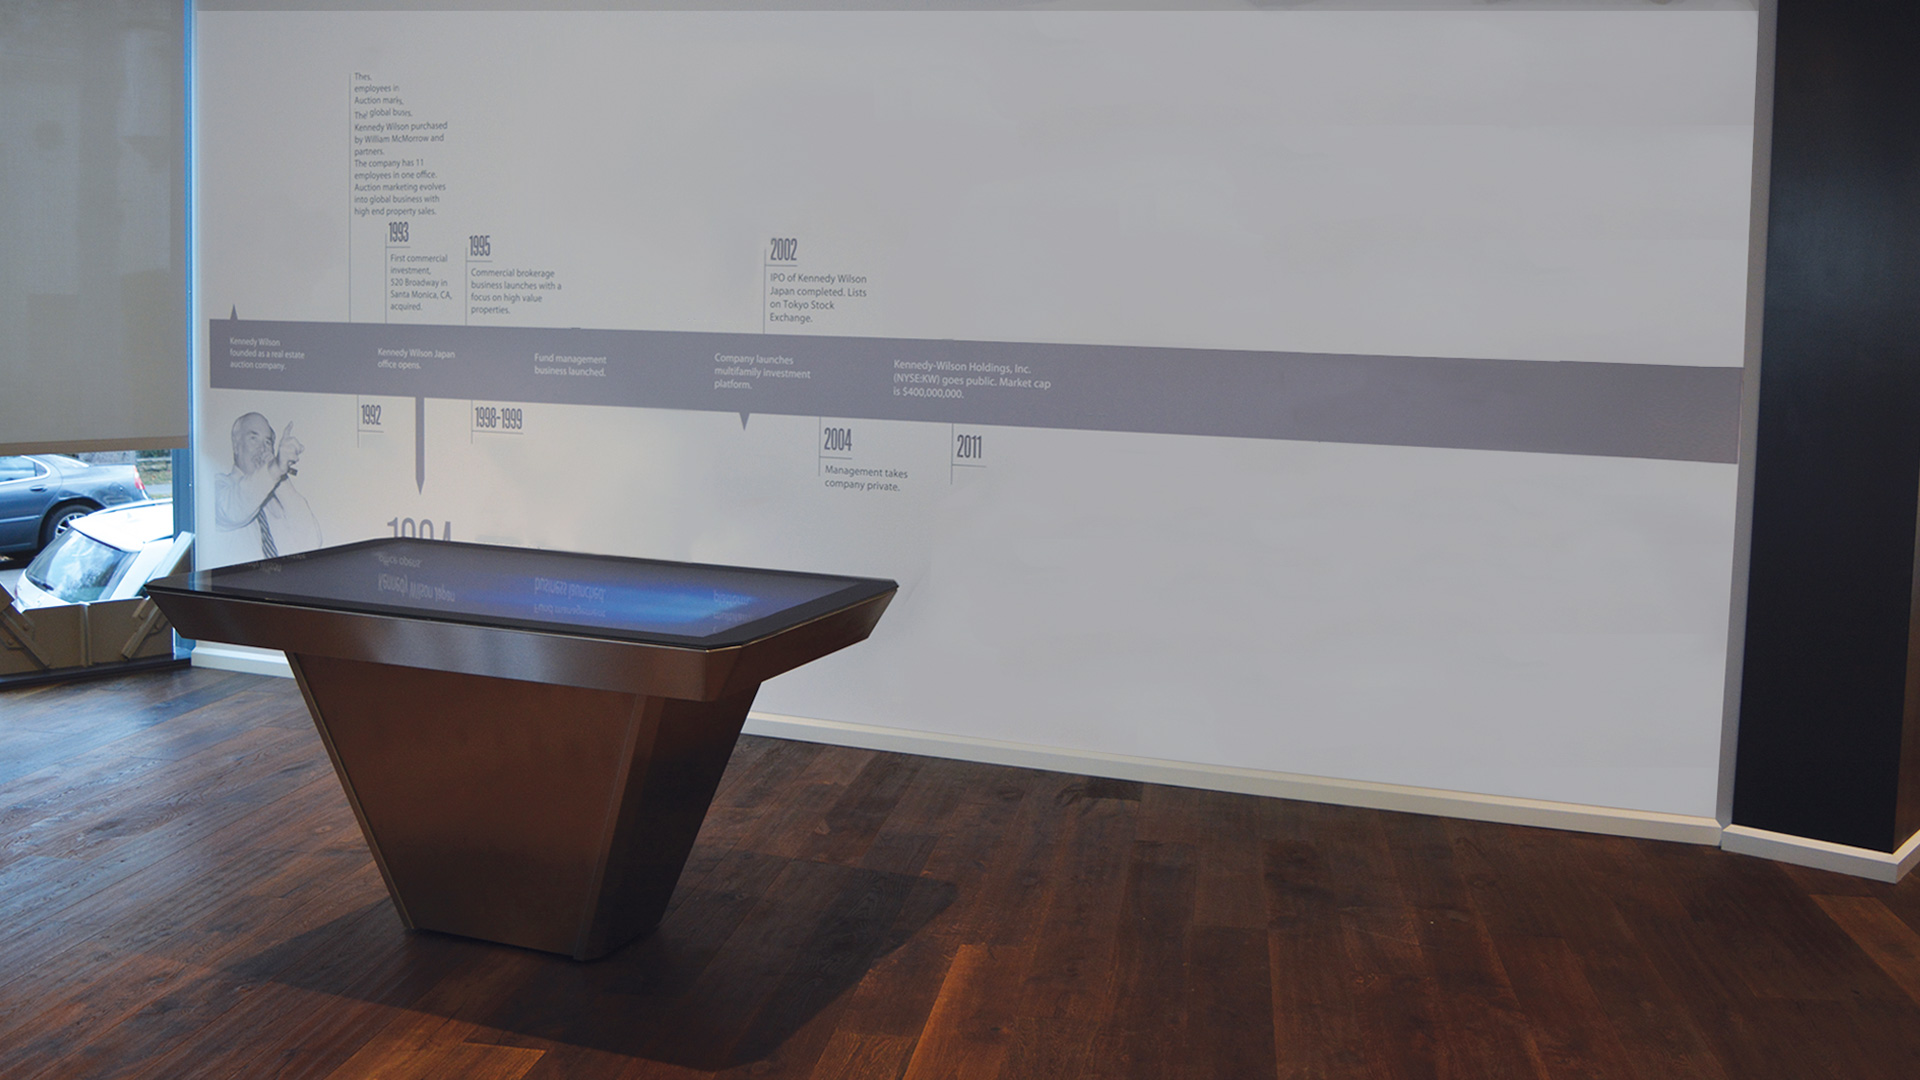 High End Touch Table with Stainless Steel and Wood Finishes by Horizon Display